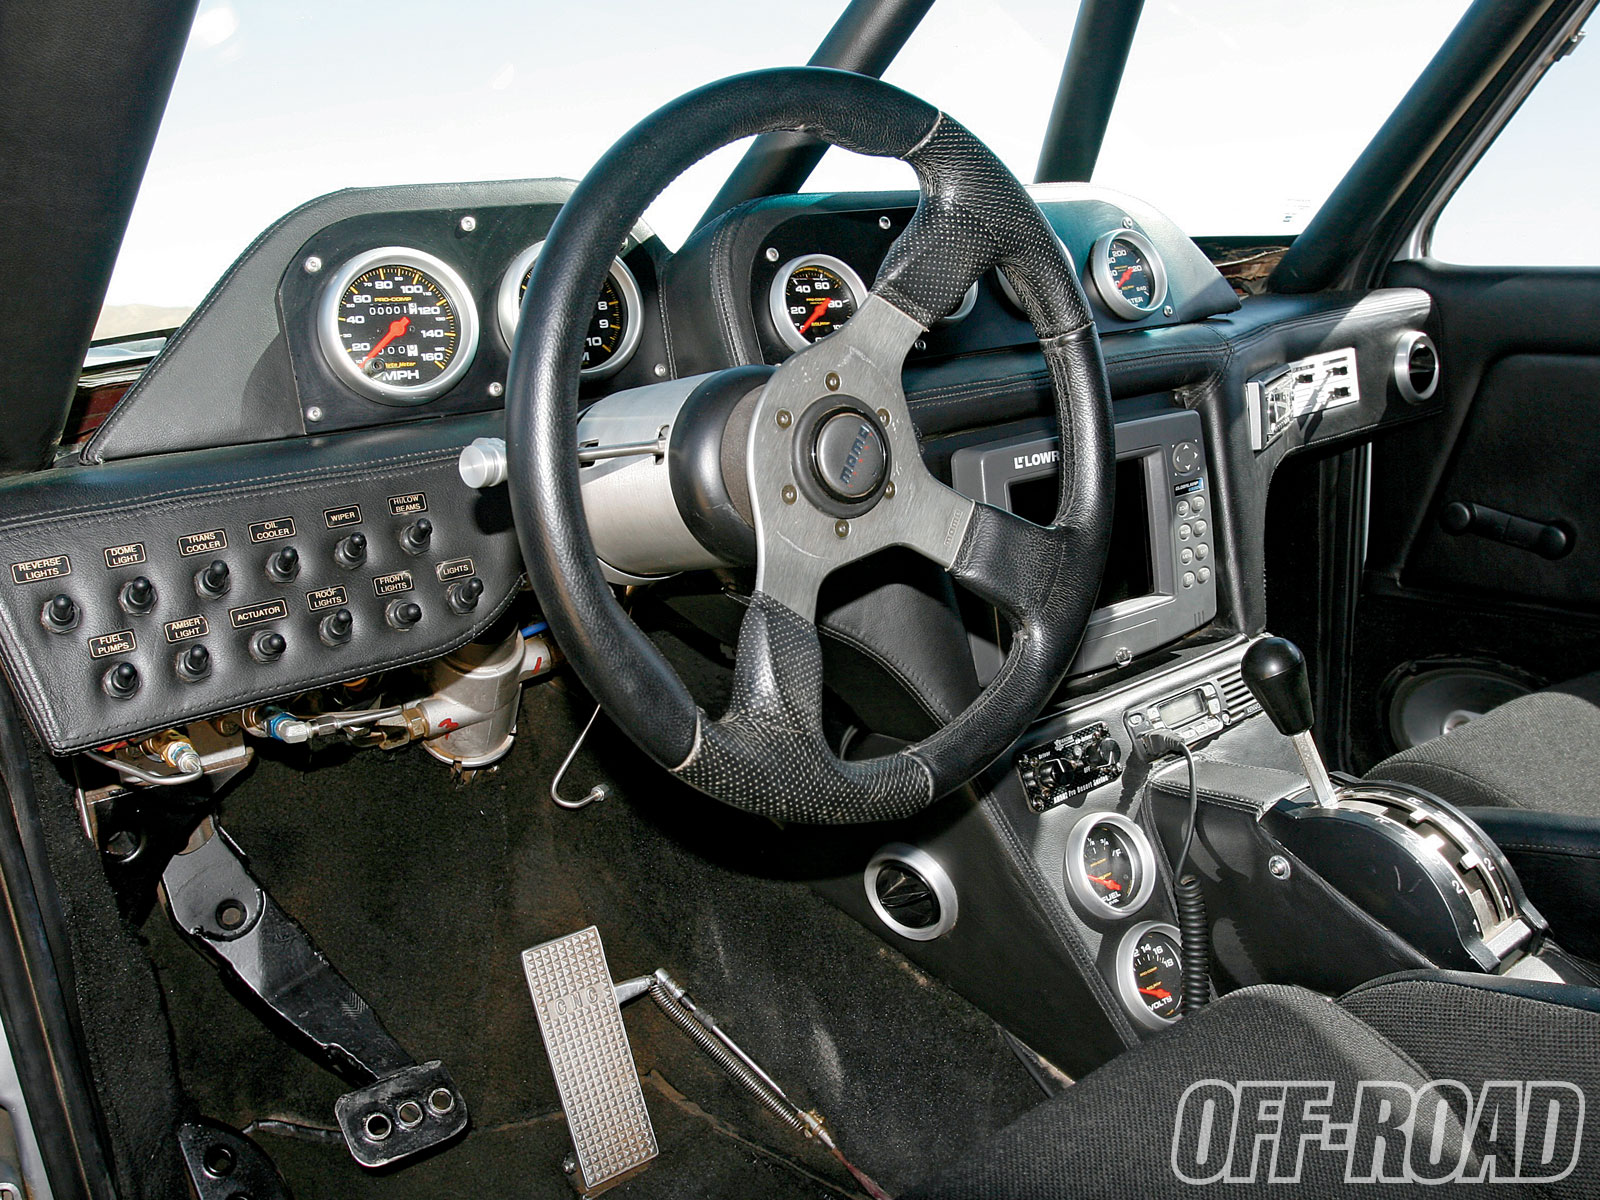 1002or 15 o+1992 ford ranger+crb fabrication dashboard